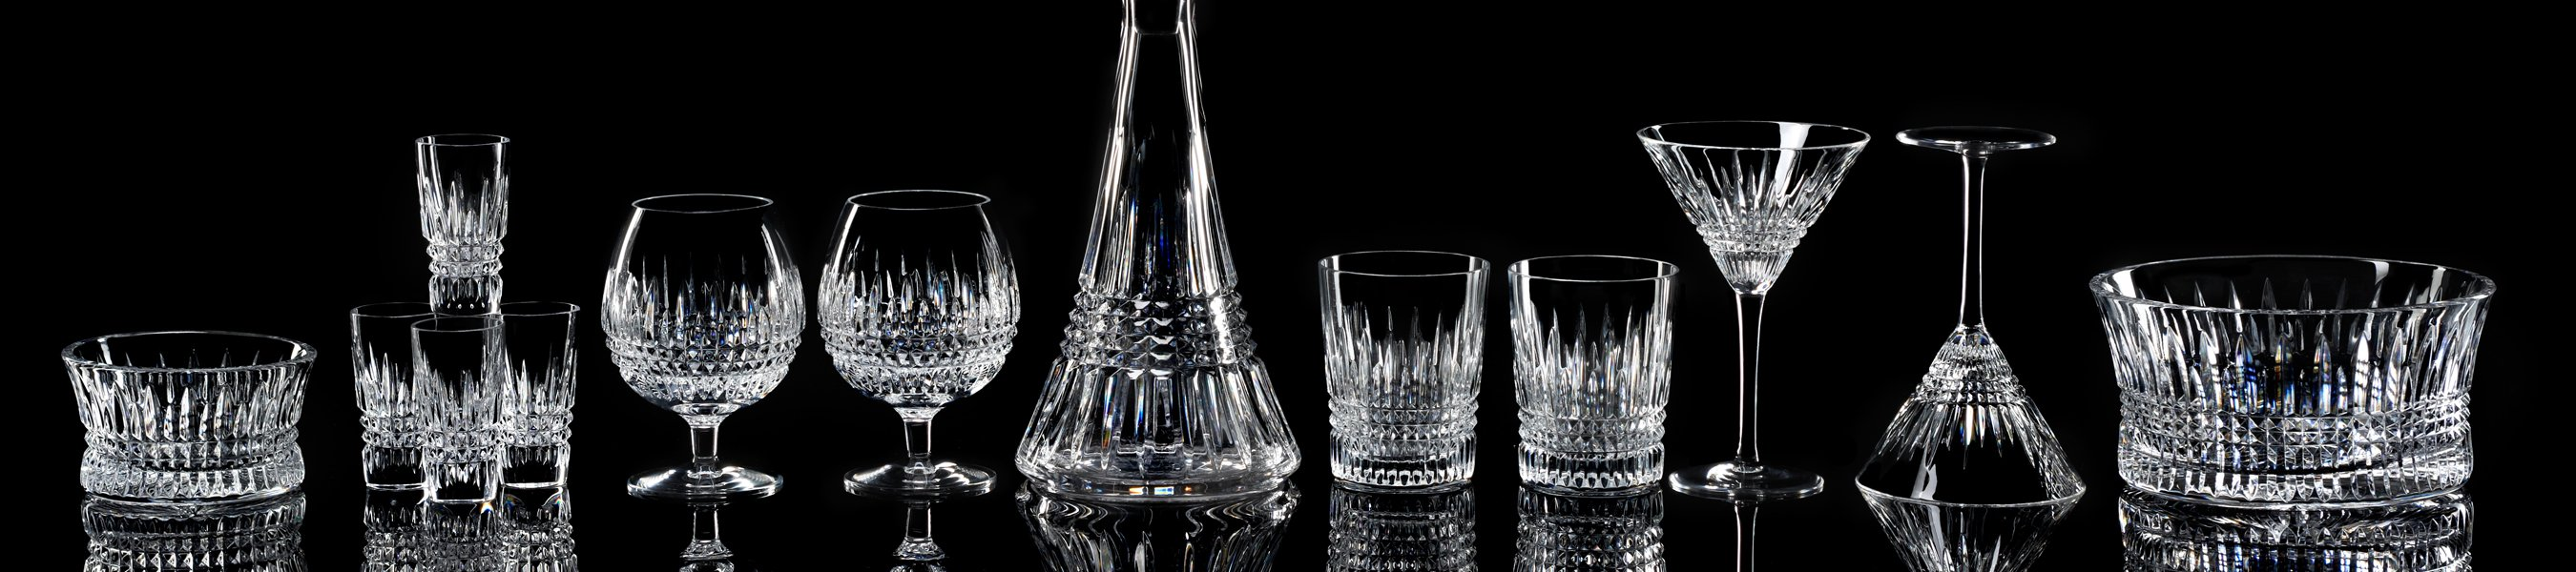 Waterford Crystal Stemware and Barware Collections